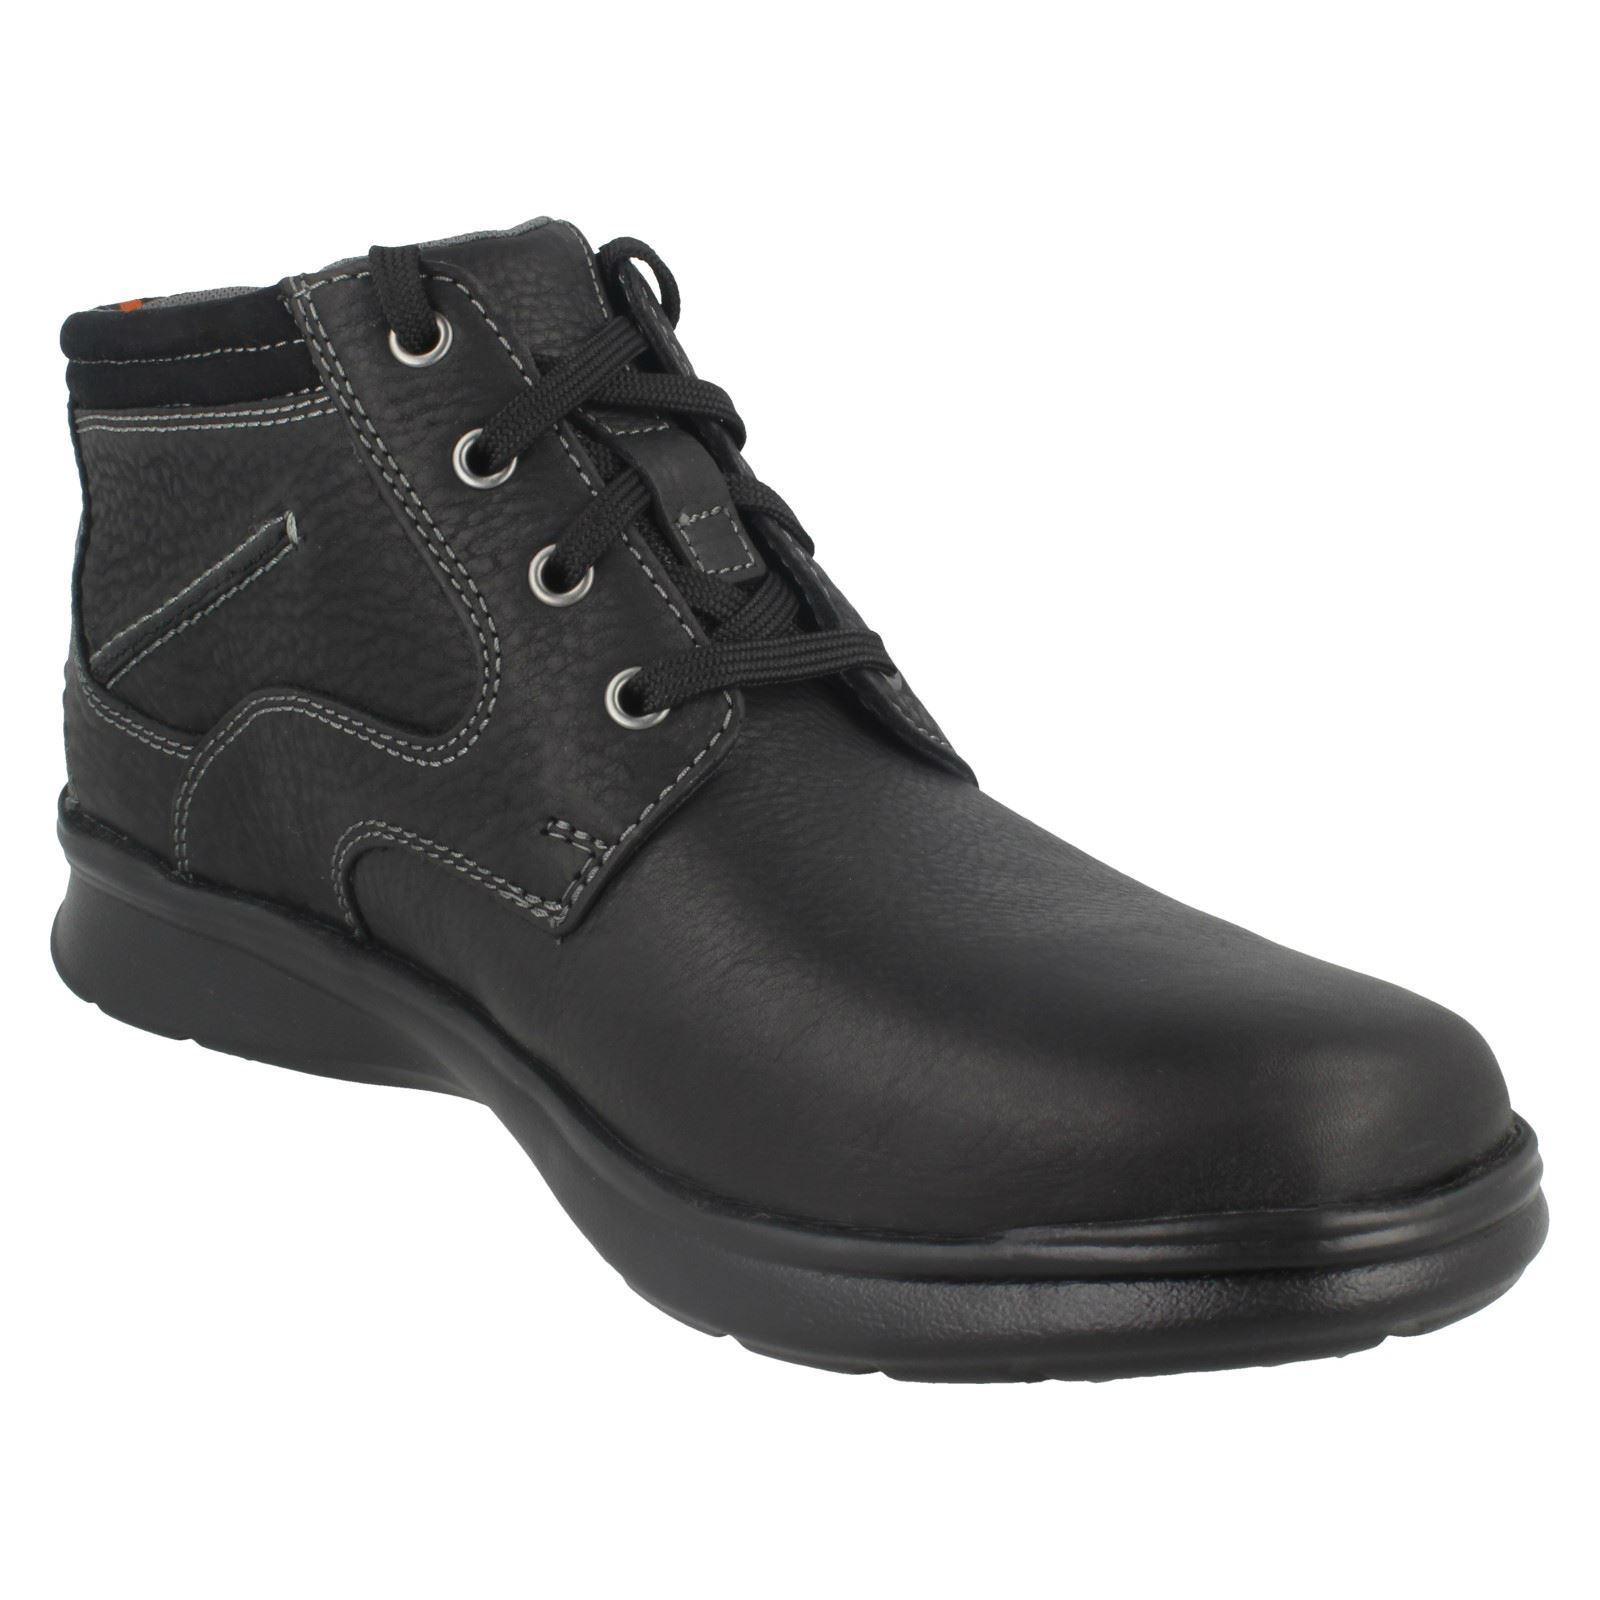 Clarks Mens Casual Lace Up Ankle Boots Cotrell Rise